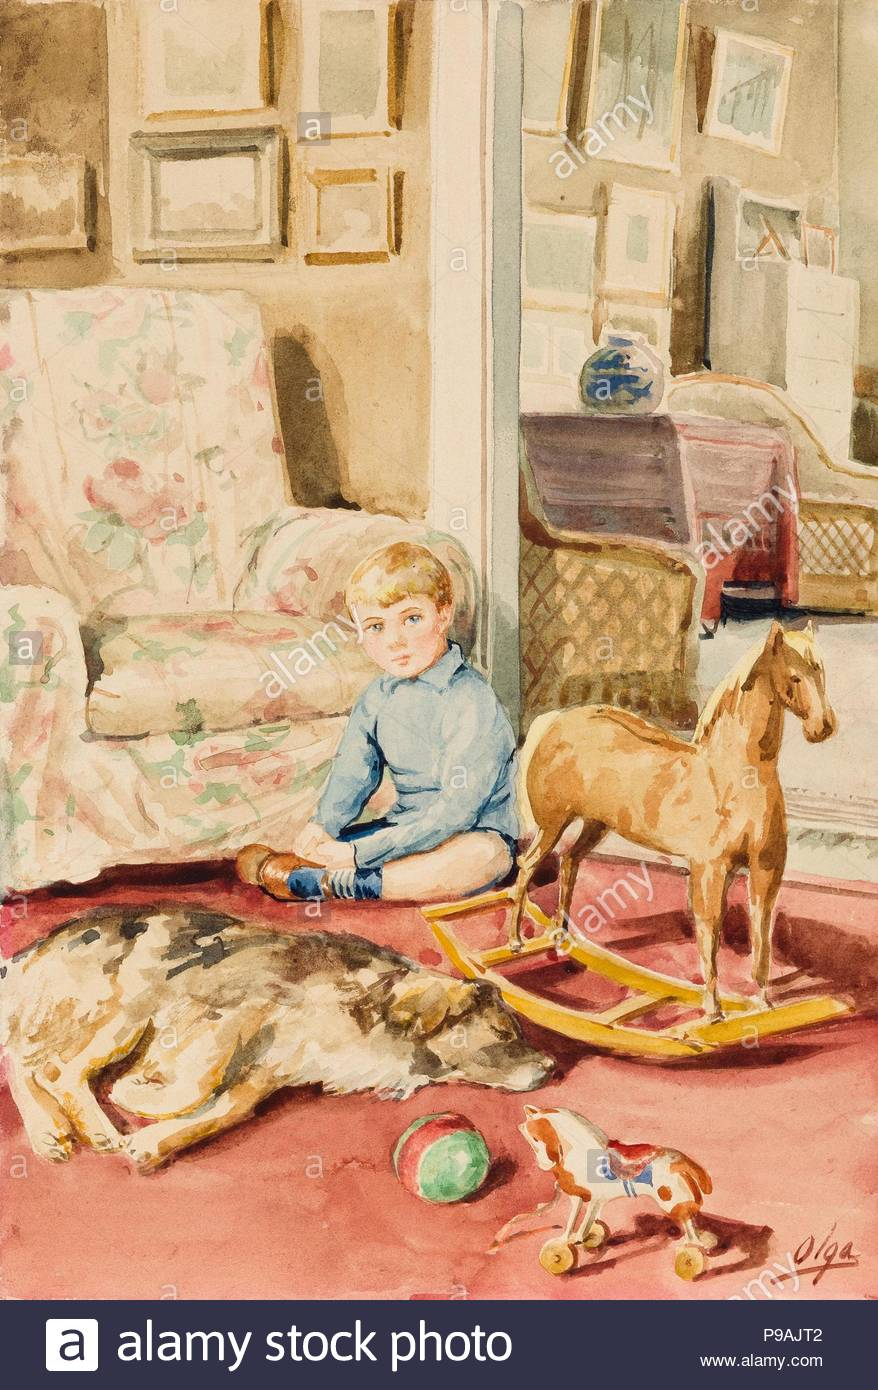 Portrait of the Artist's Son with a Dog and Toys. Museum: PRIVATE COLLECTION. - Stock Image